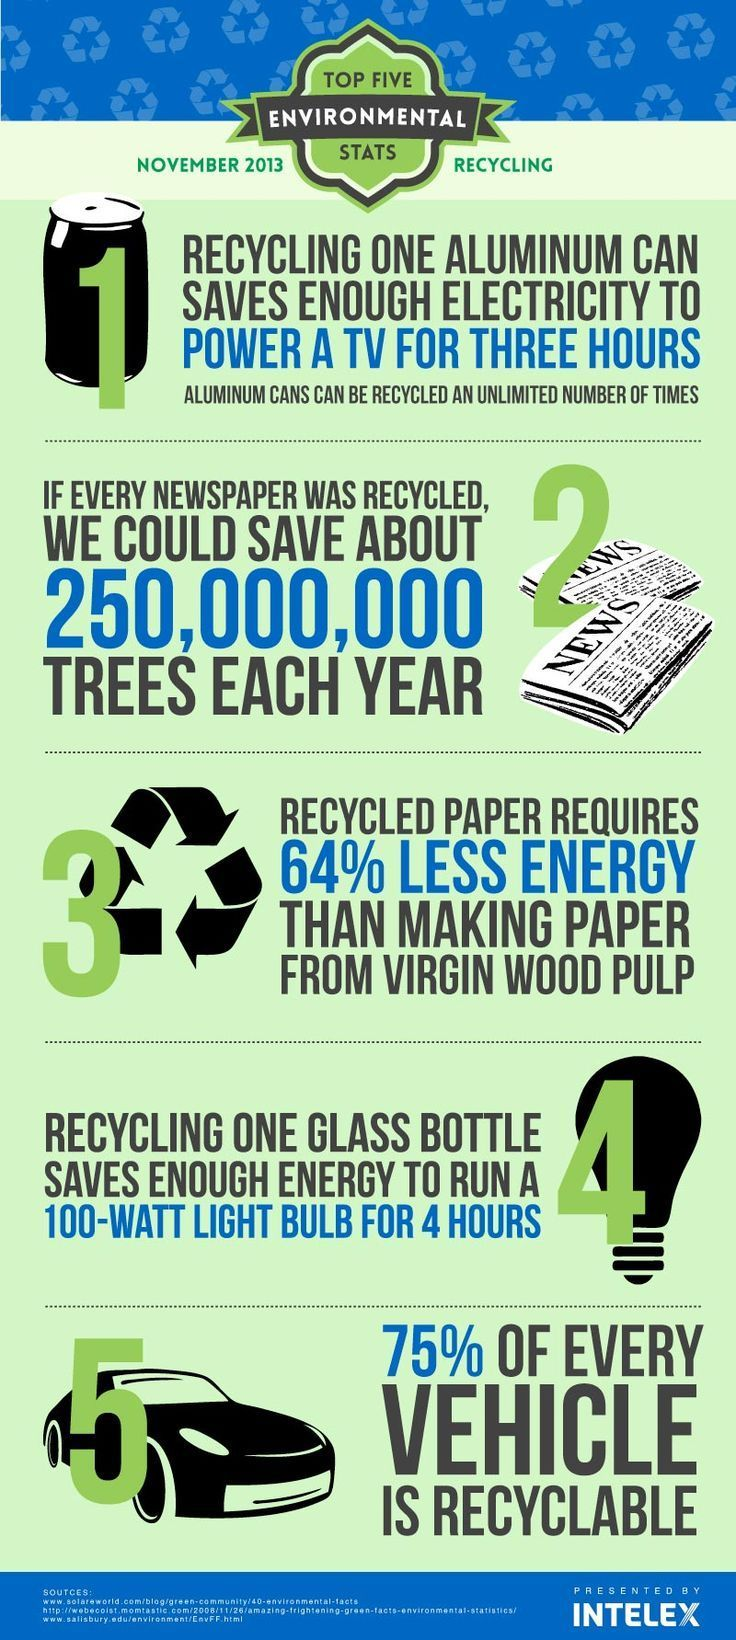 Five Important Facts About Recycling And The Environment